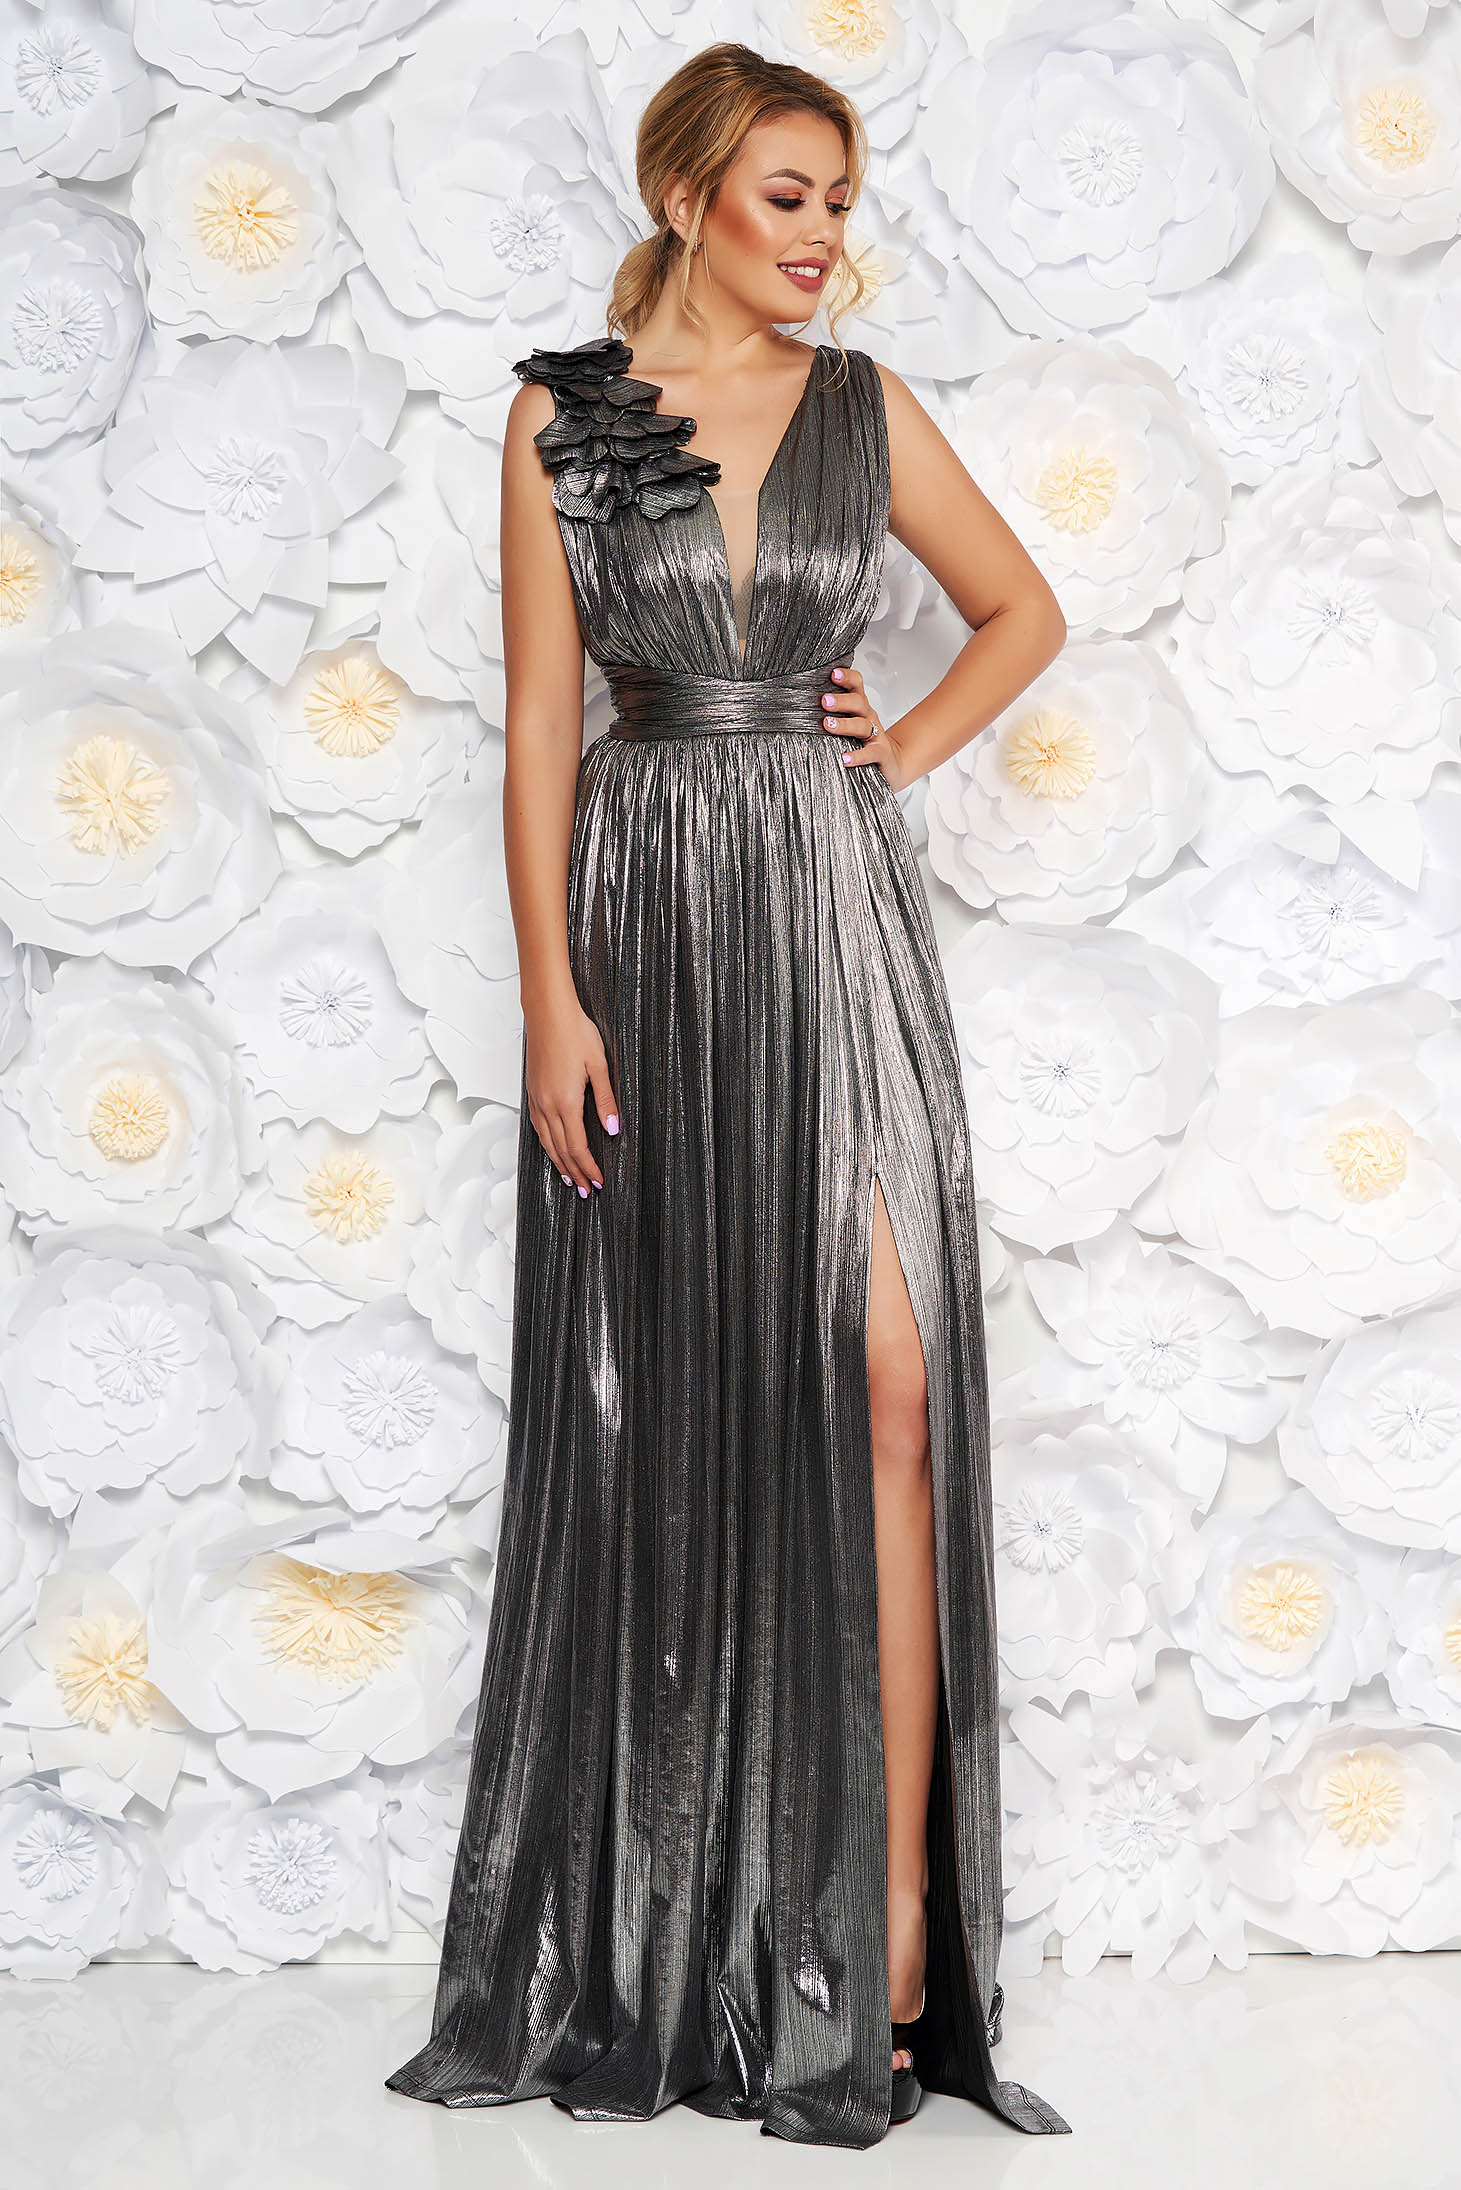 LaDonna silver occasional cloche dress from shiny fabric with floral details